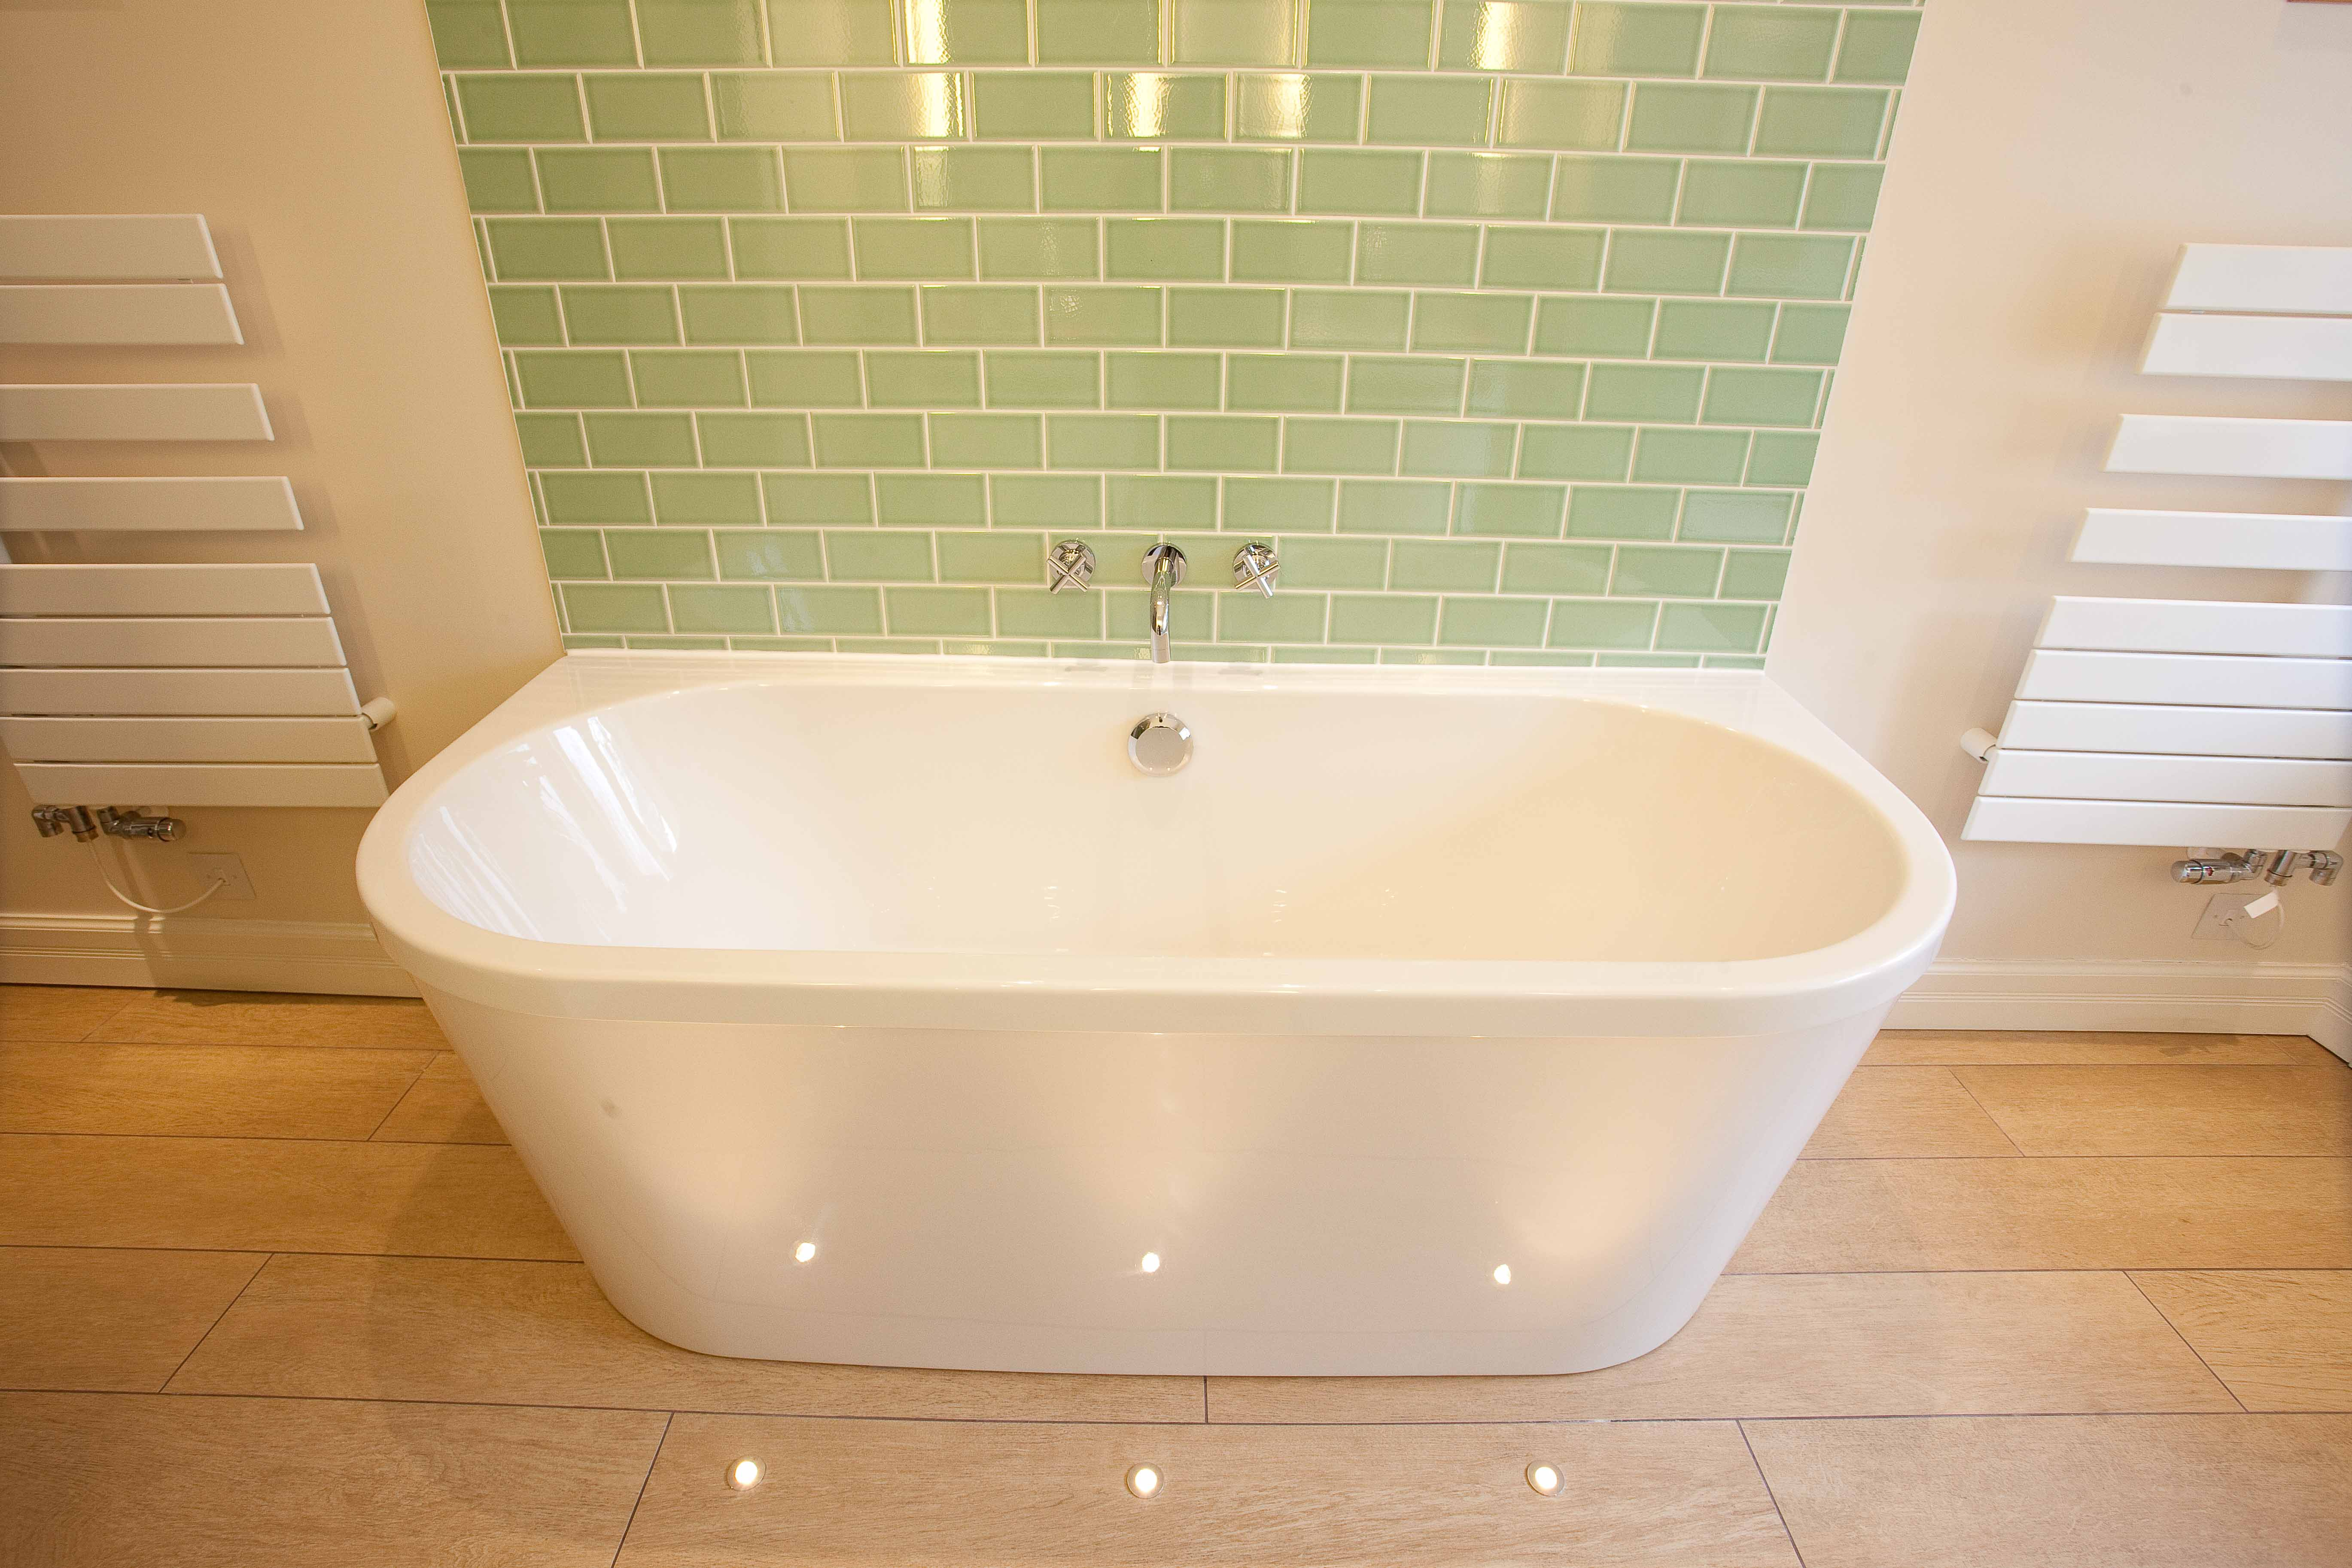 Bath with floor lighting and green subway tiles behind.